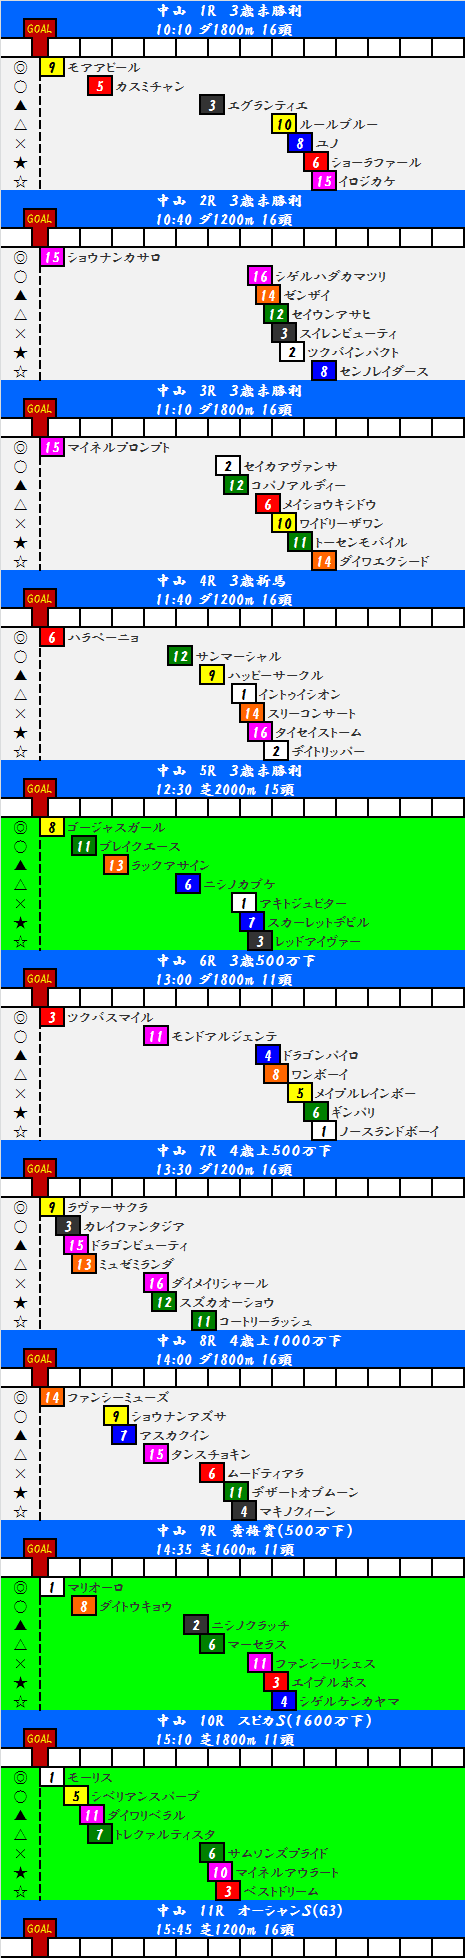 2015030701.png